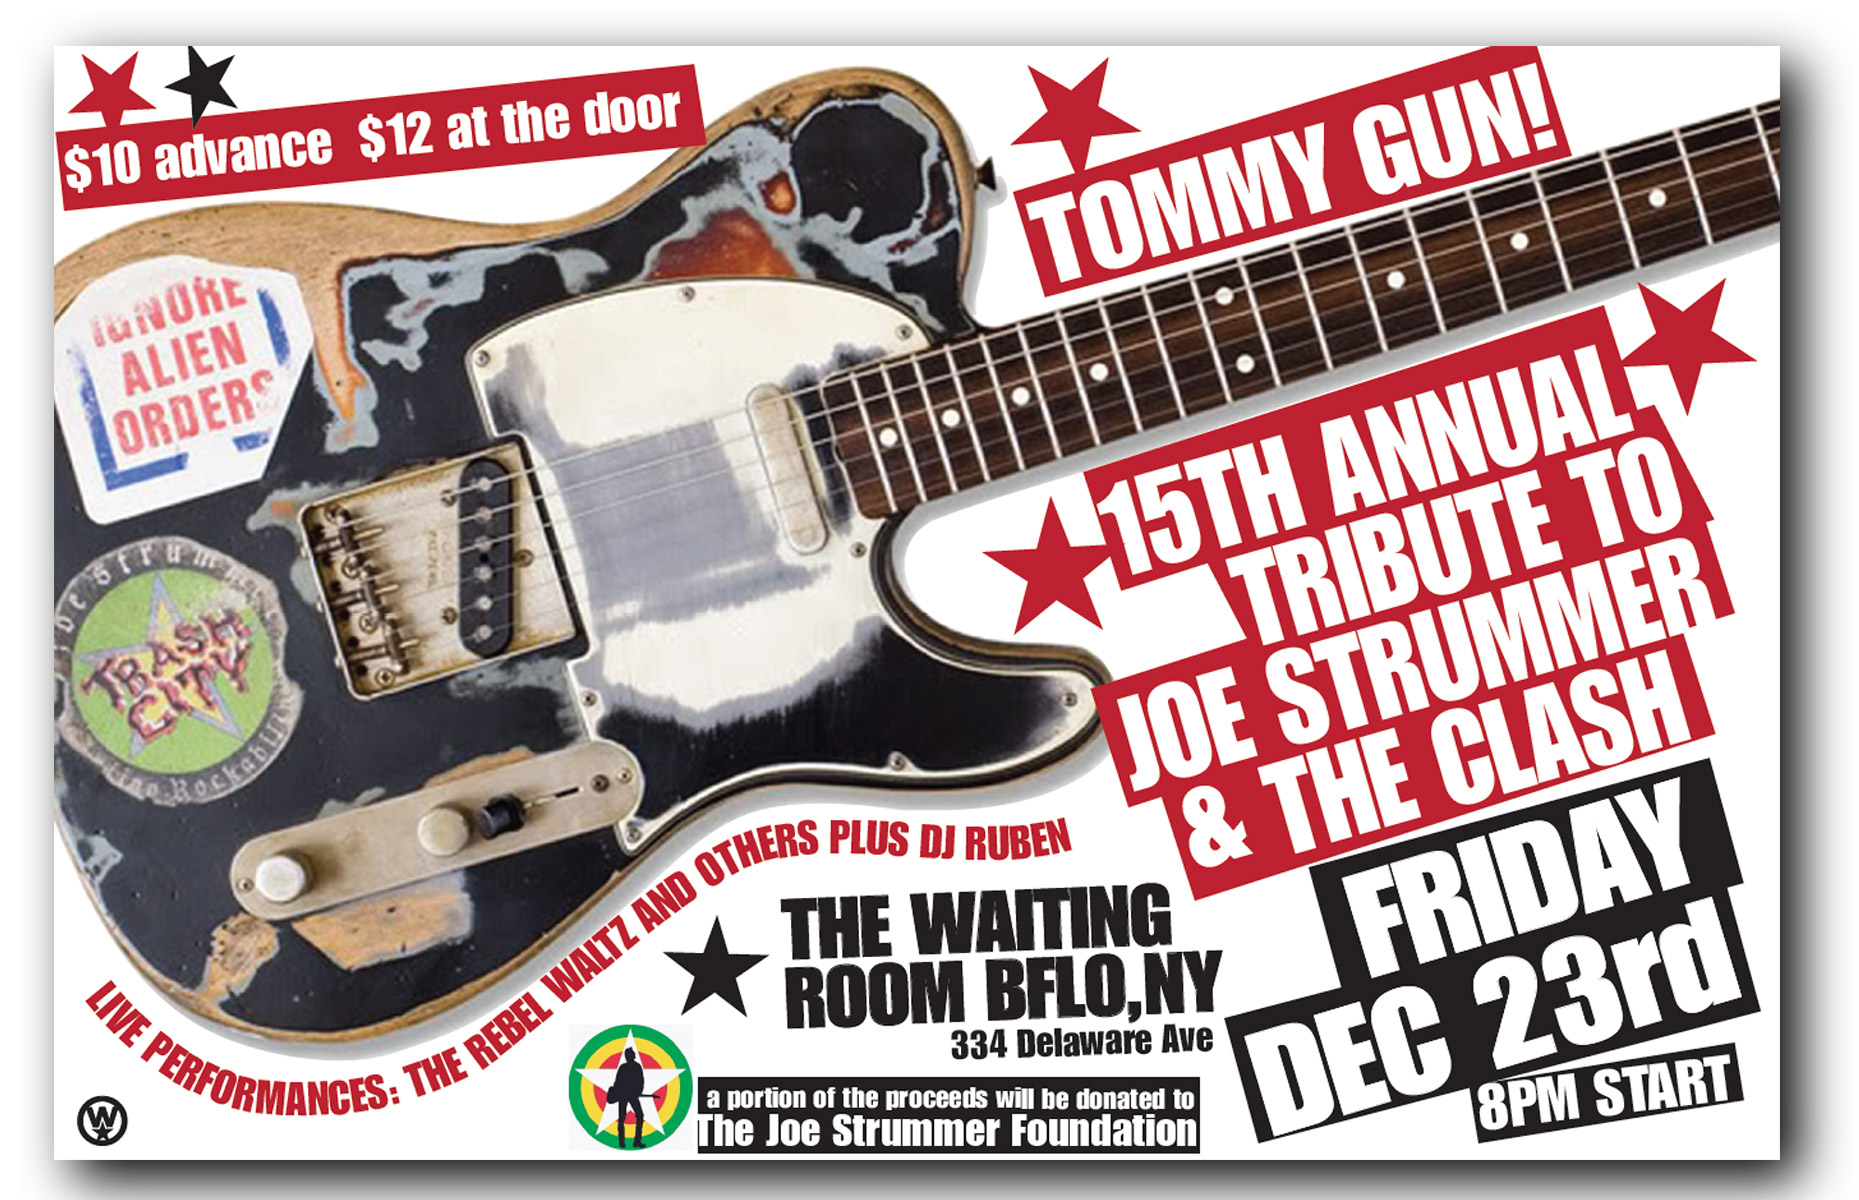 tommy gun, tribute to joe strummer, the clash, waiting room, buffalo ny, poster design, mark wisz